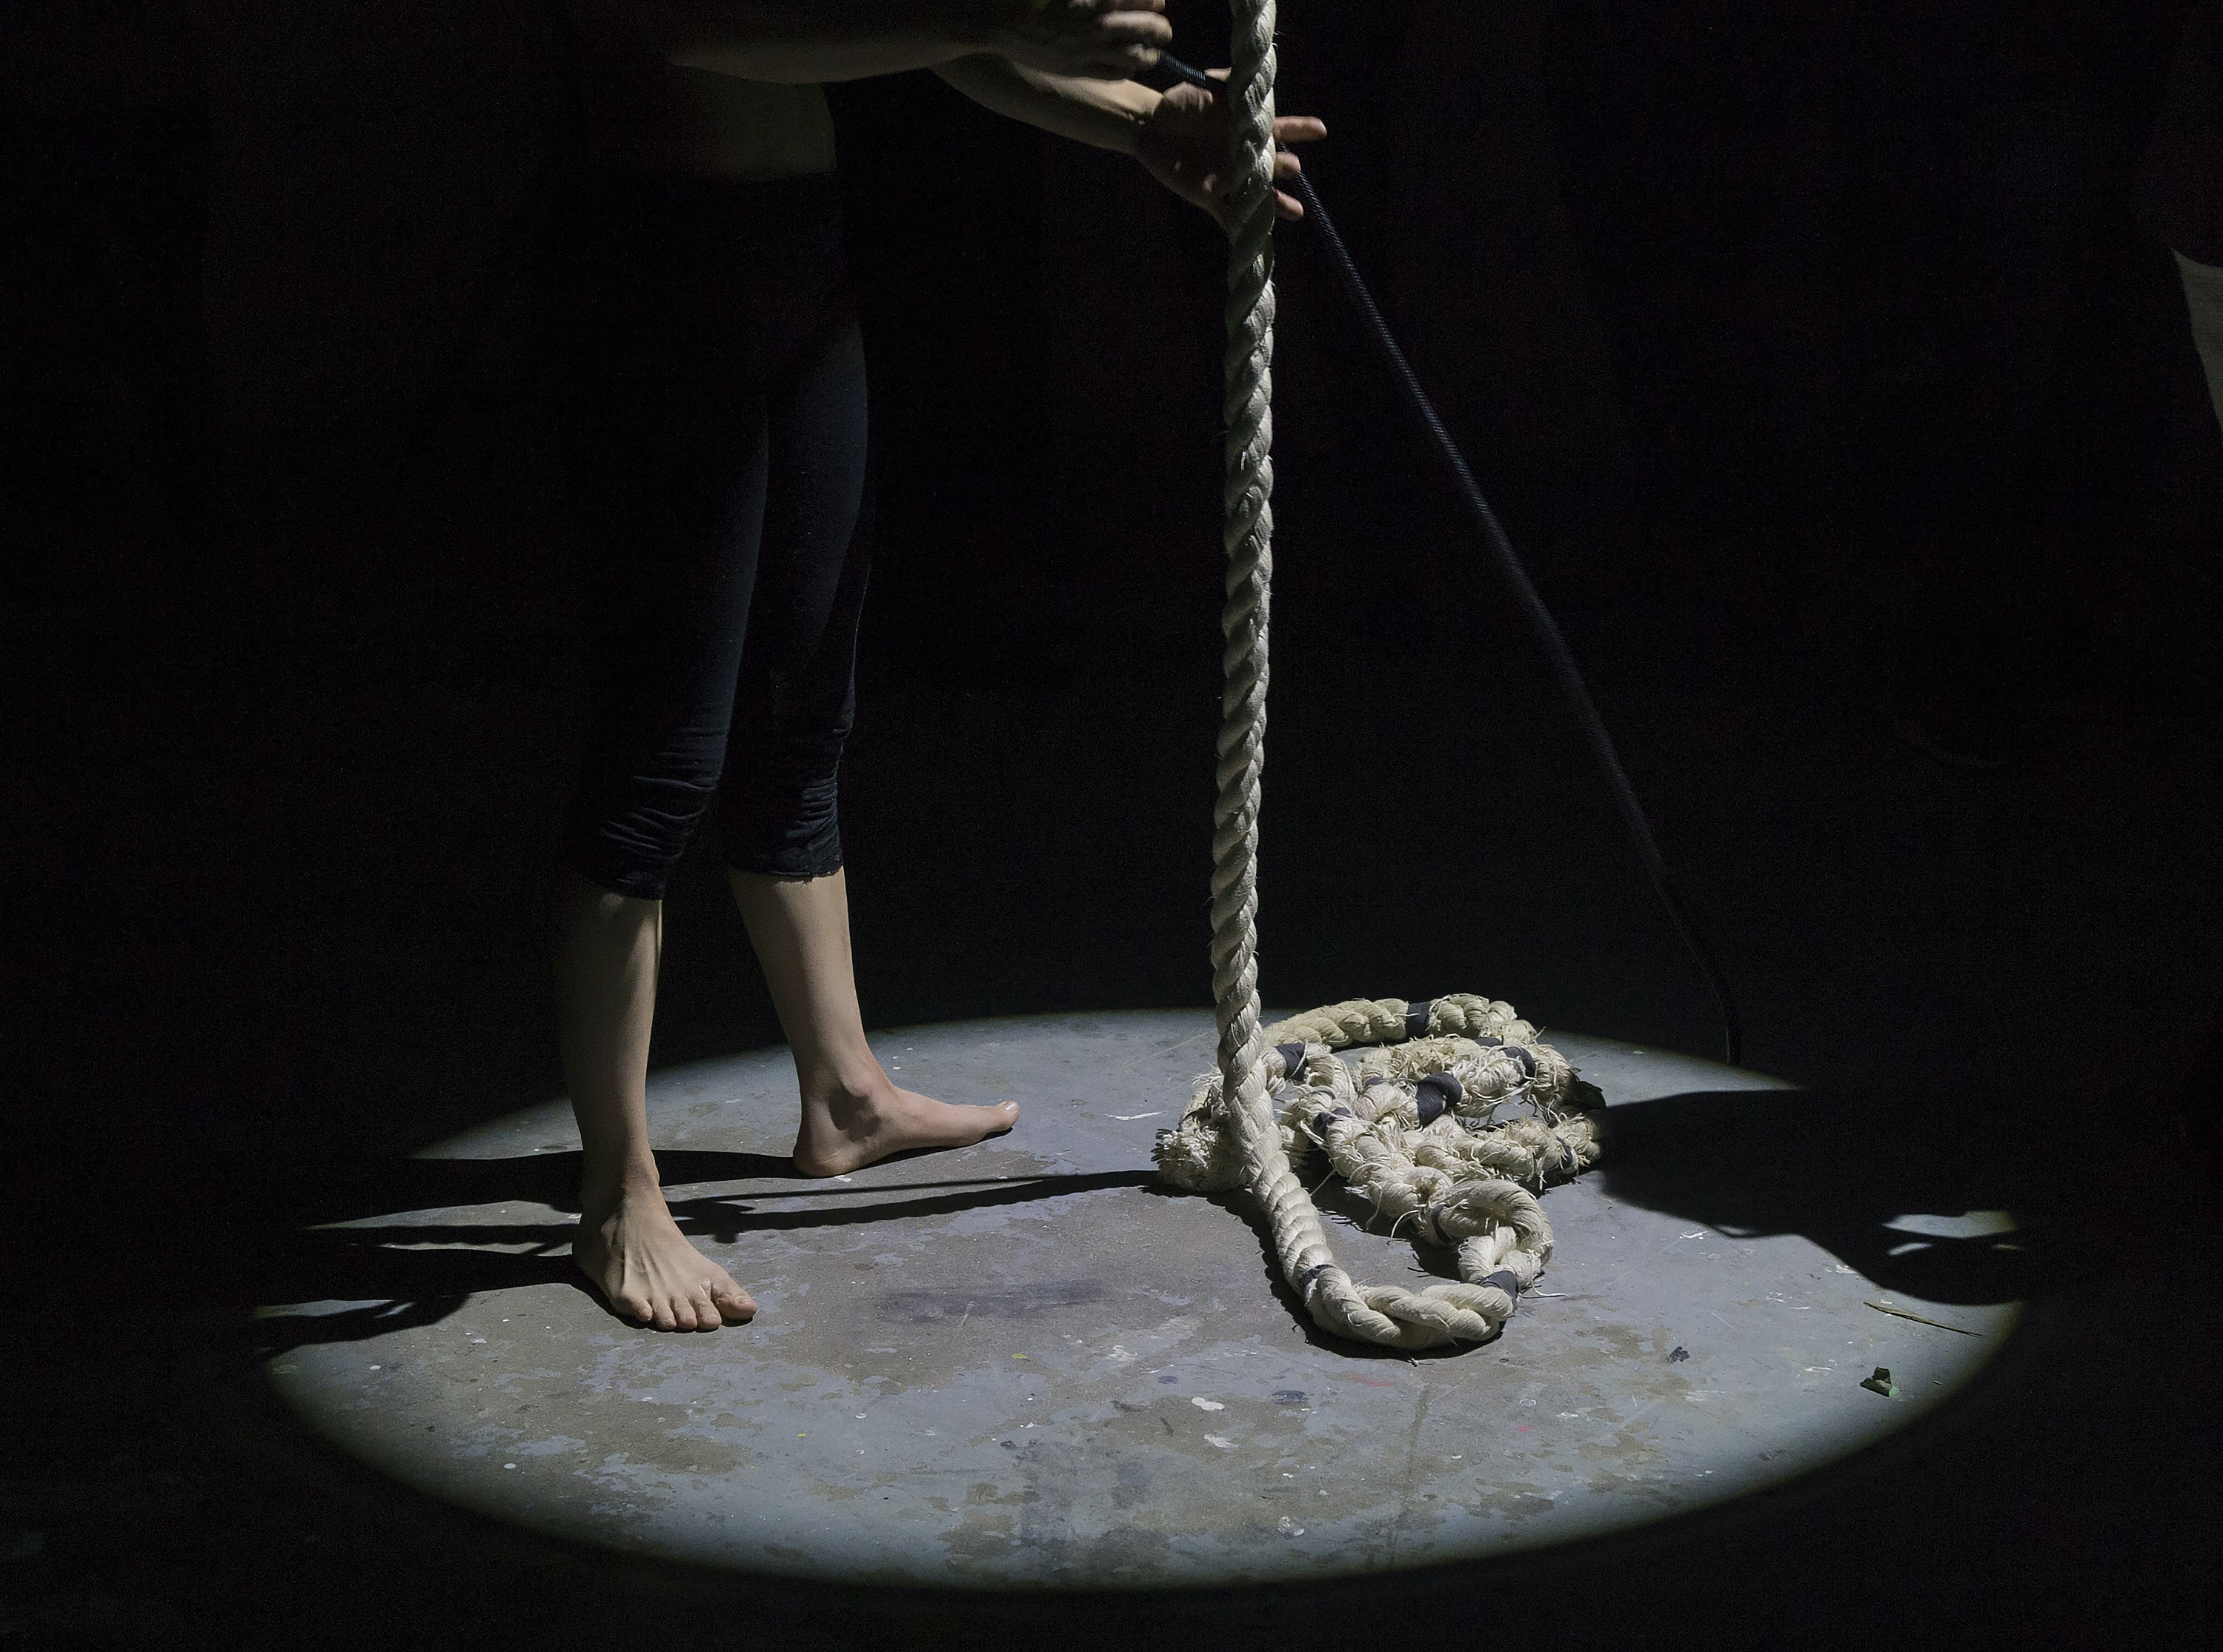 A barefoot person holding rope under a spotlight